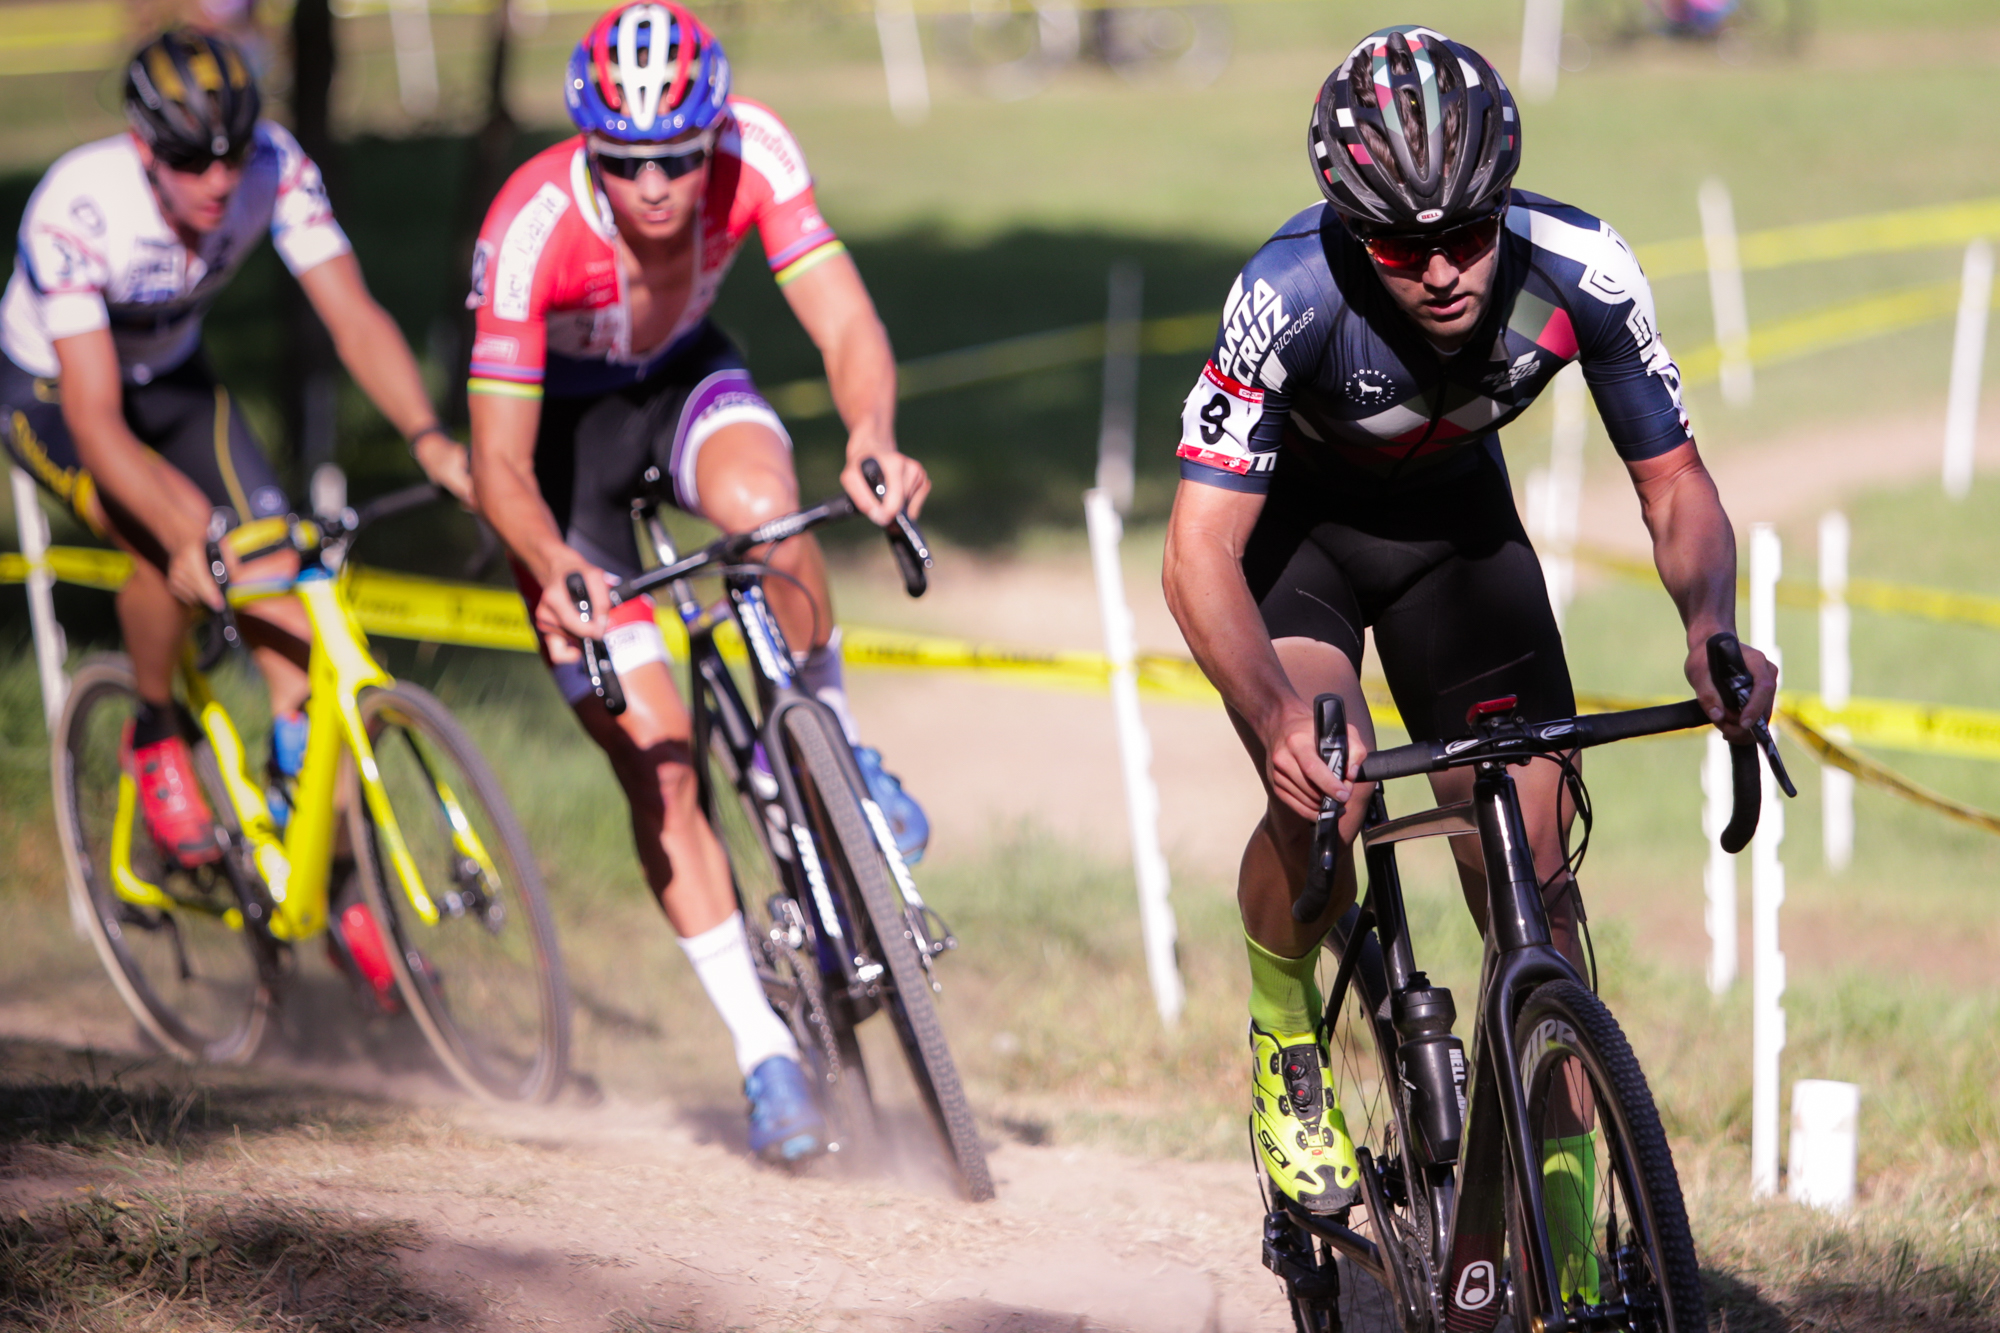 Tobin Ortenblad lead at Trek CX Cup